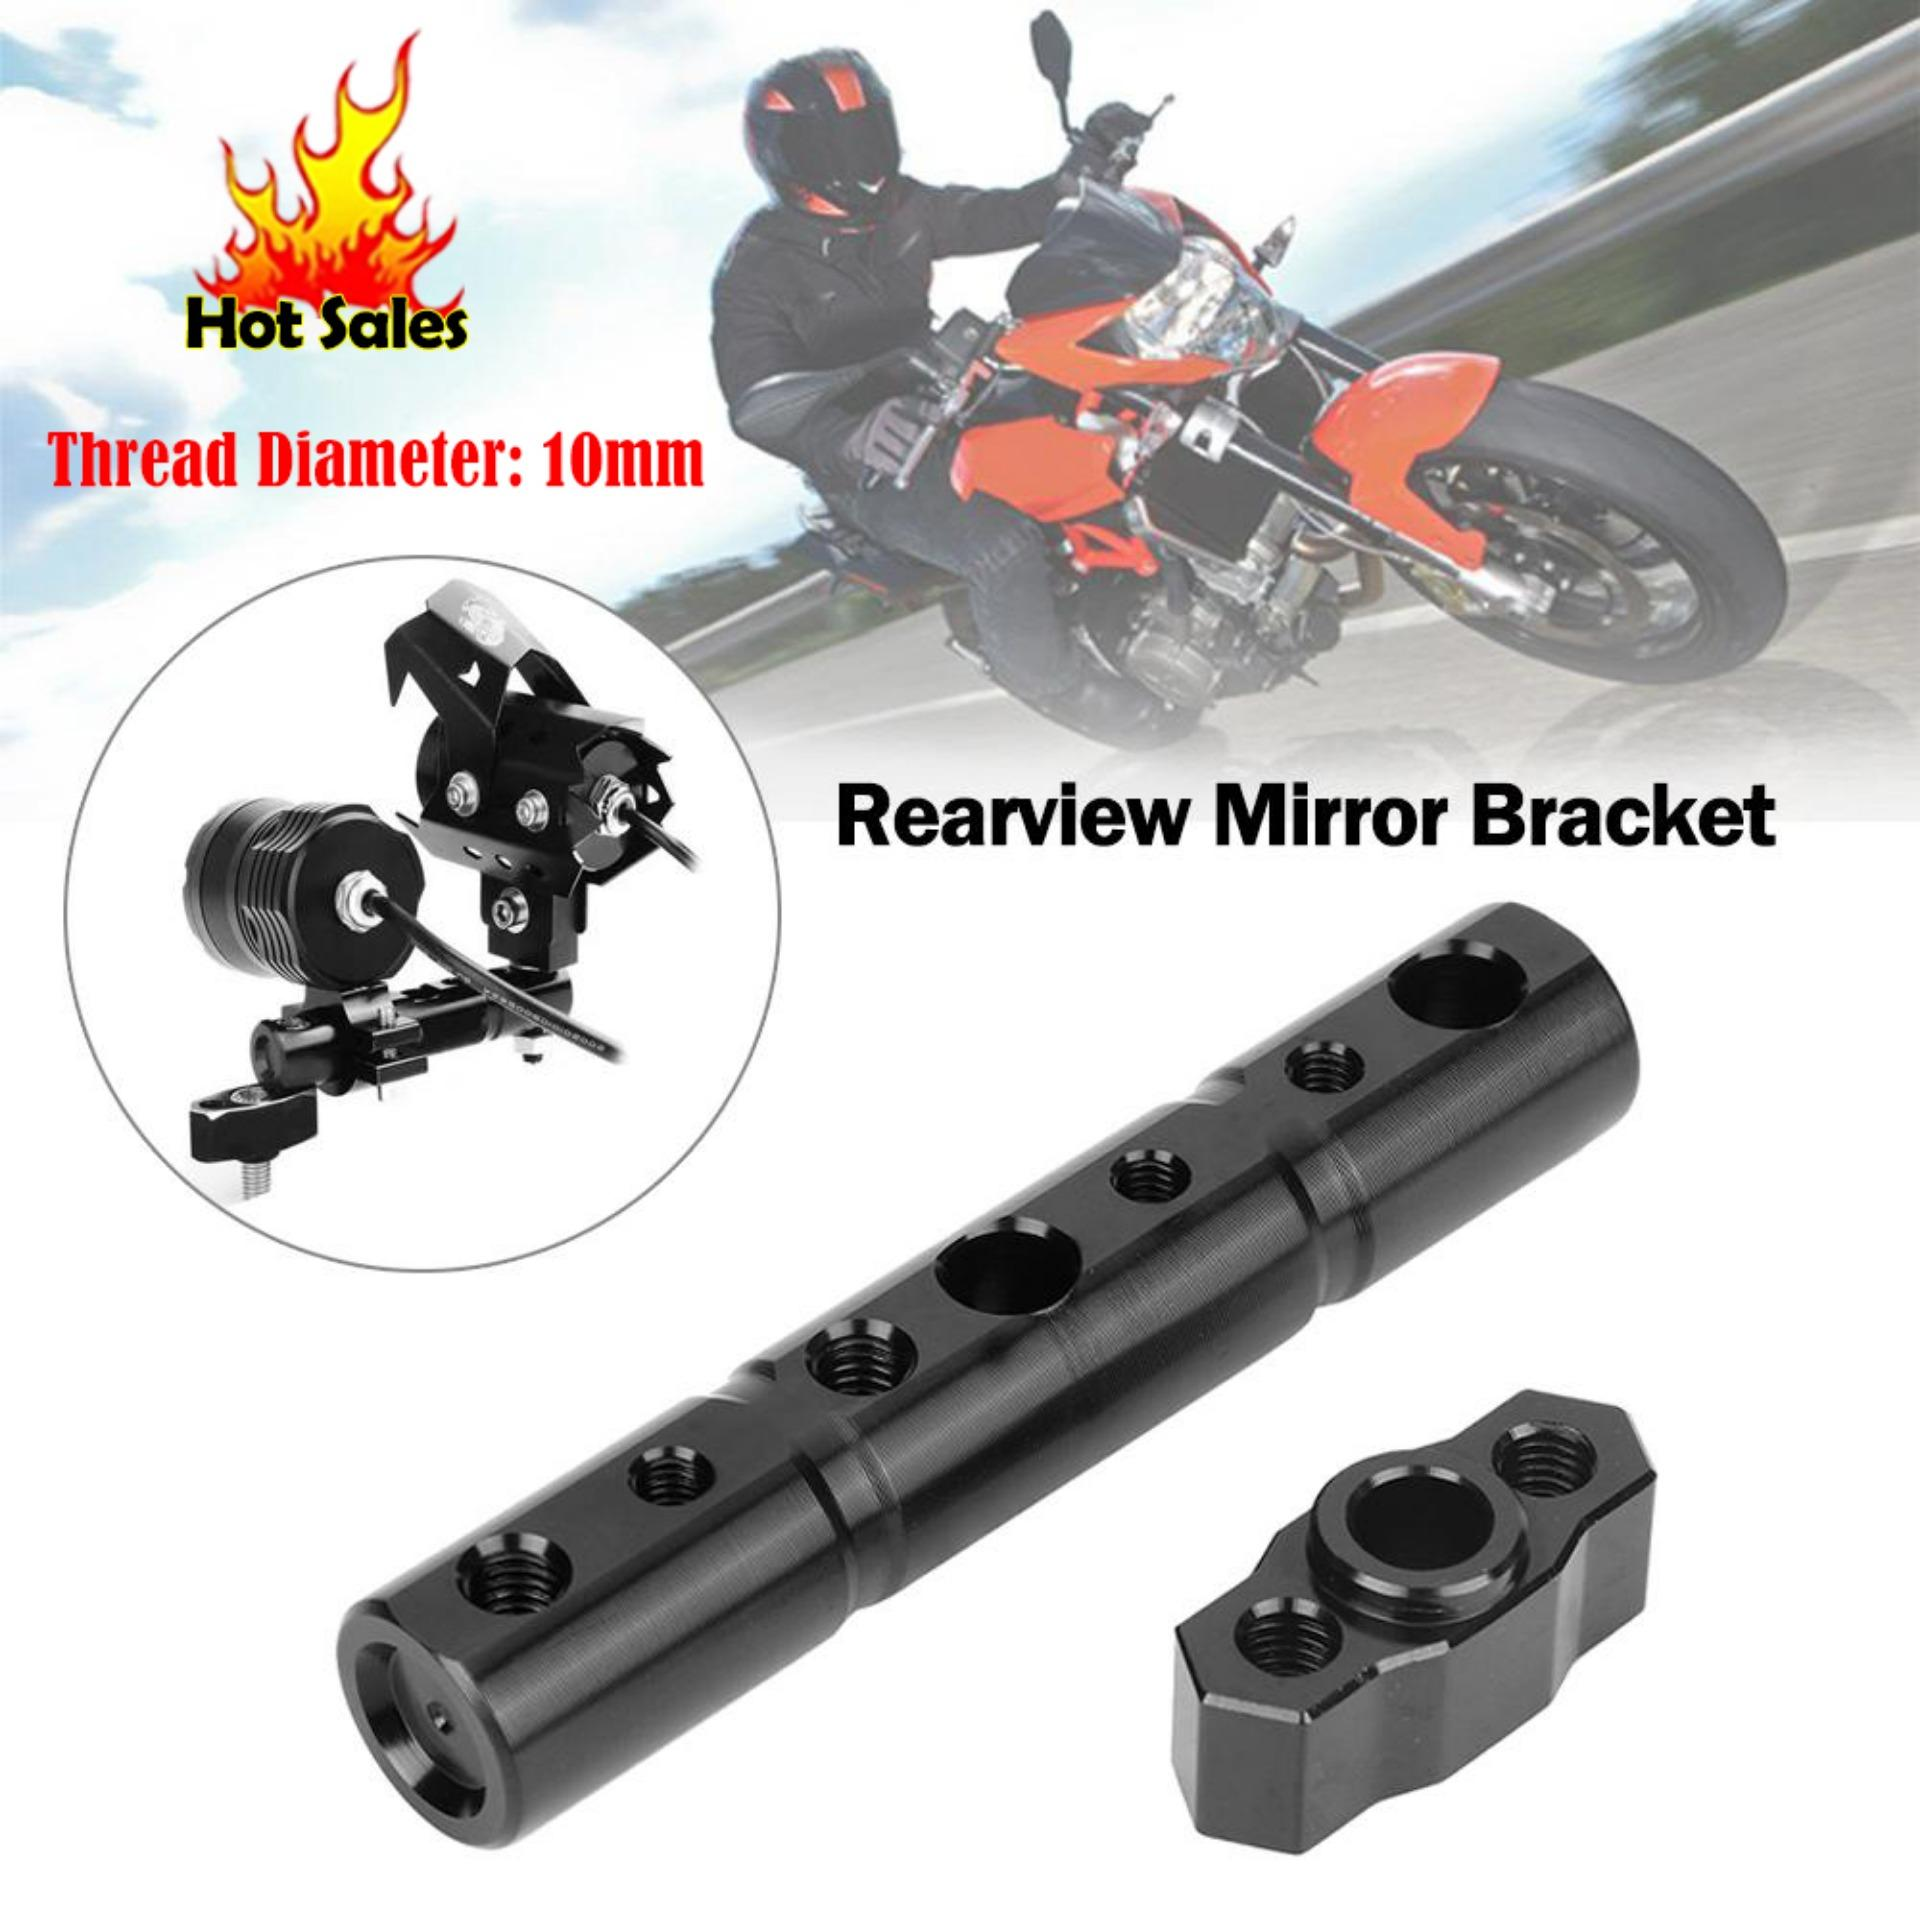 【buy 2 Save ₱50】10mm Motorcycle Rearview Mirror Extended Mount Bracket Bar Spotlight Cell Phone Holder Black By Qilu.